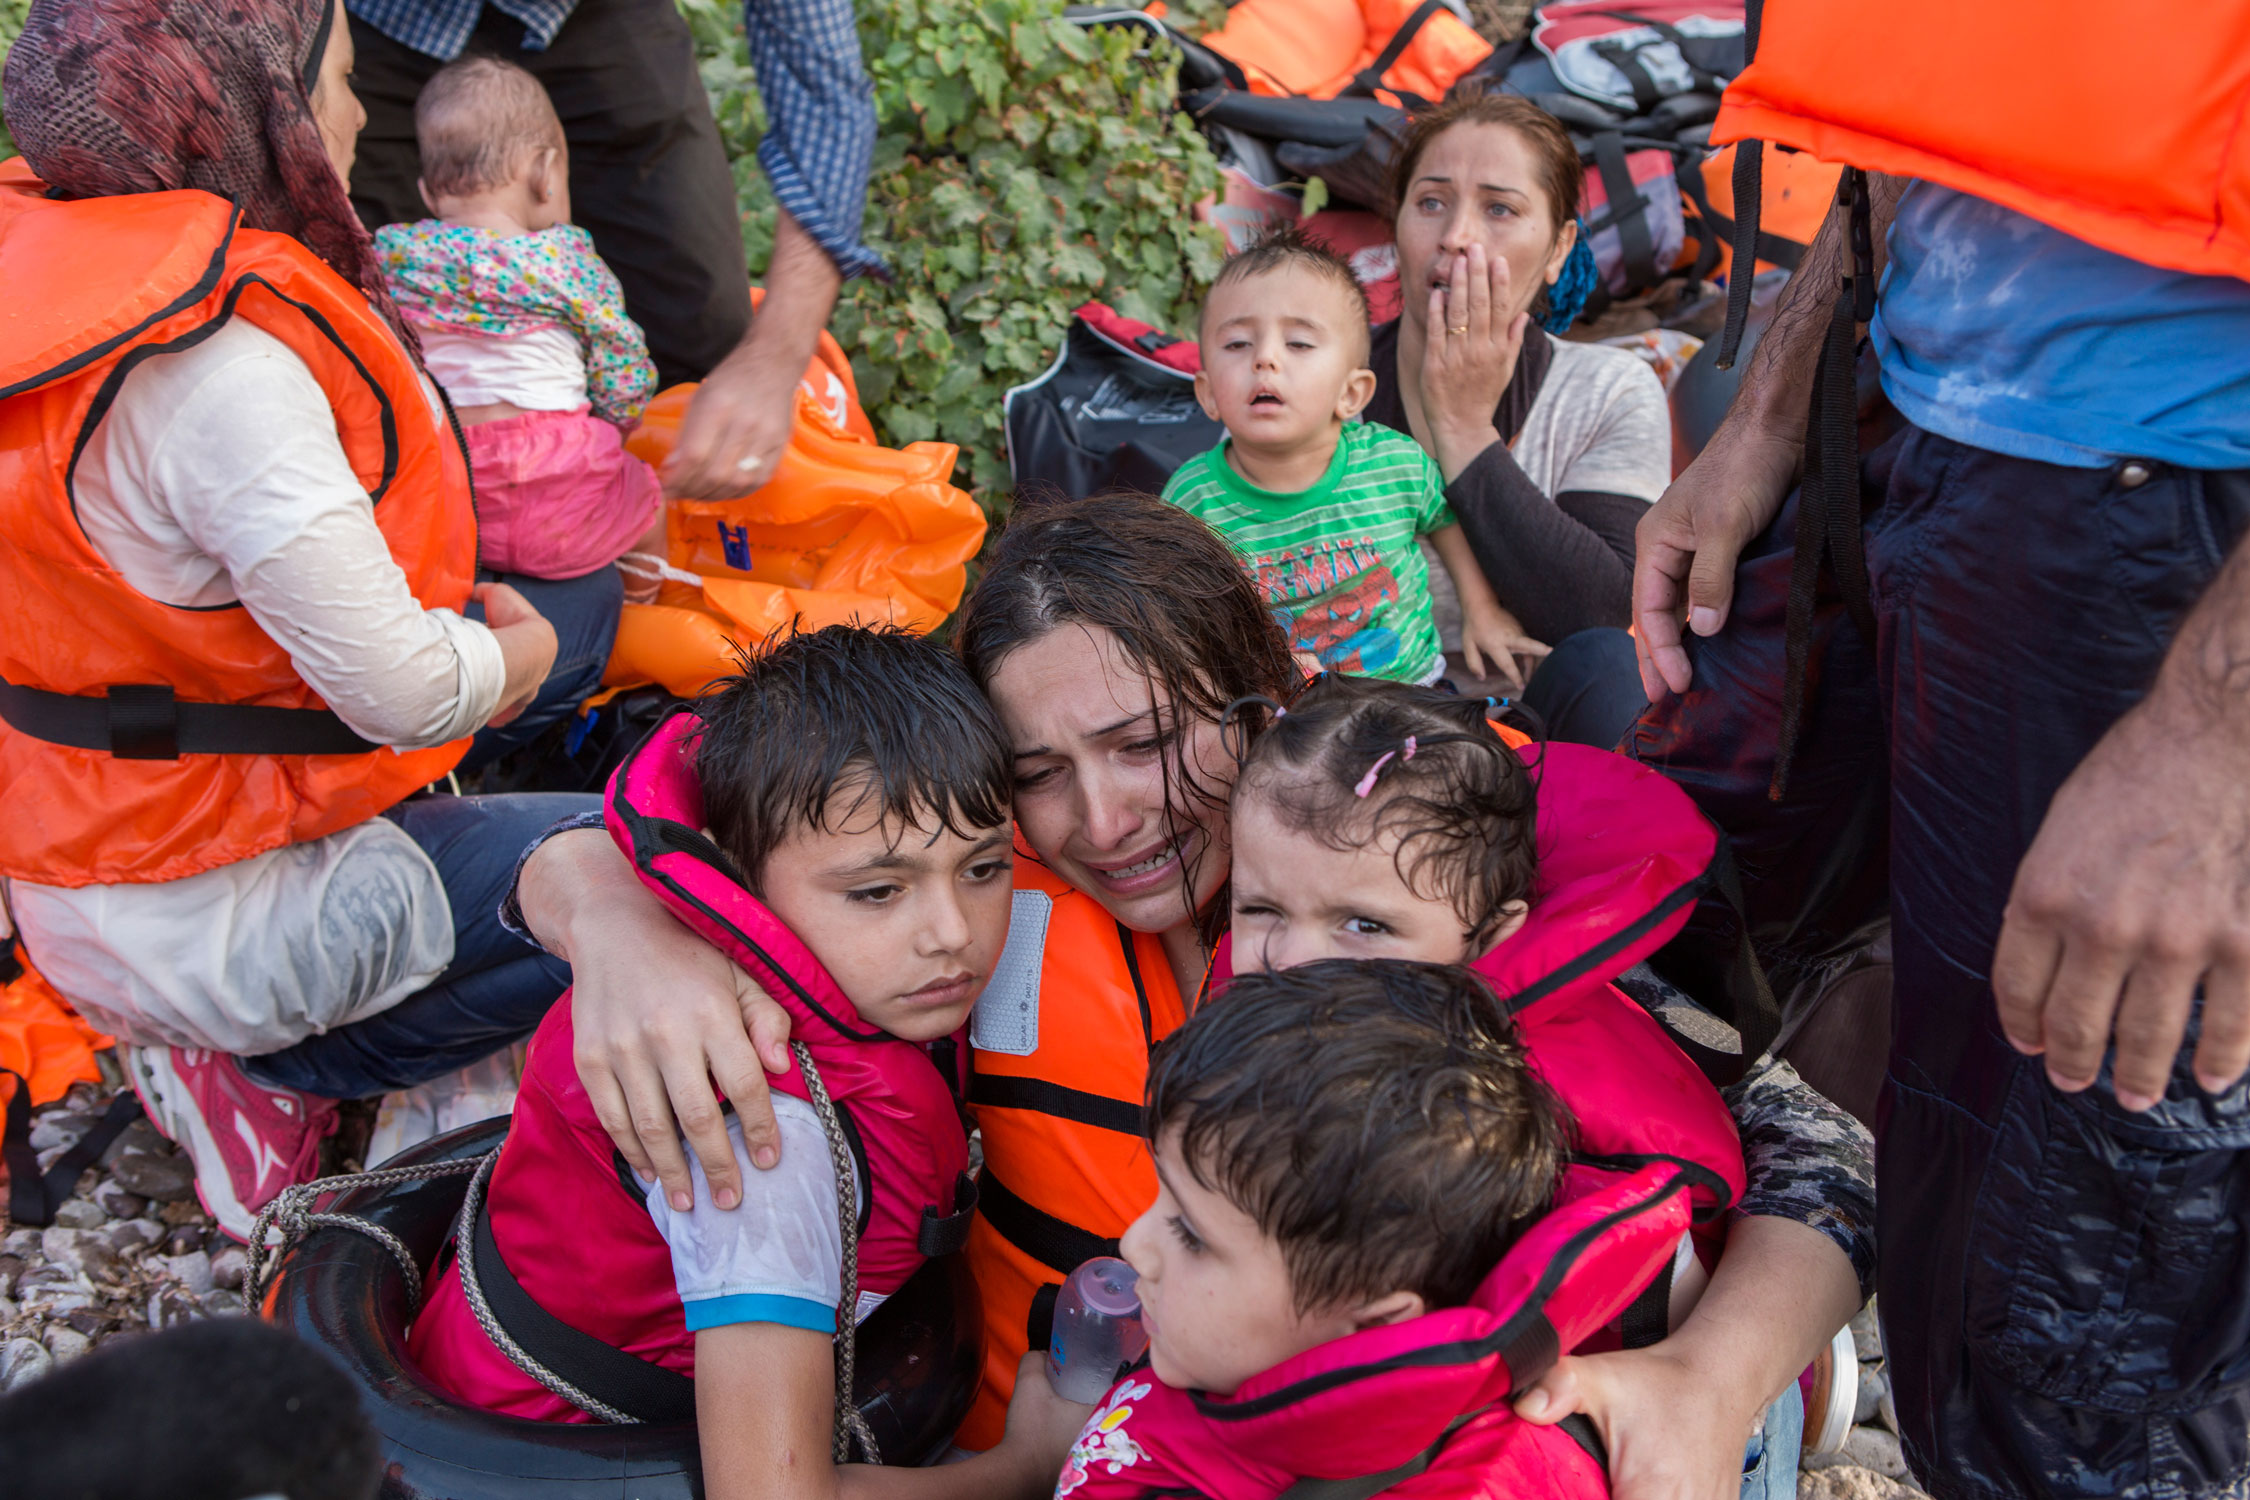 Photographer: Ivor Prickett | A Syrian woman cries in relief as she embraces her three young children. They have just endured a very rough crossing across the Aegean from Turkey to the Greek island of Lesbos.  Women and children currently account for two thirds of those crossing to Europe. In February 2016, they made up nearly 60 per cent of sea arrivals, compared to 27 per cent in September 2015.